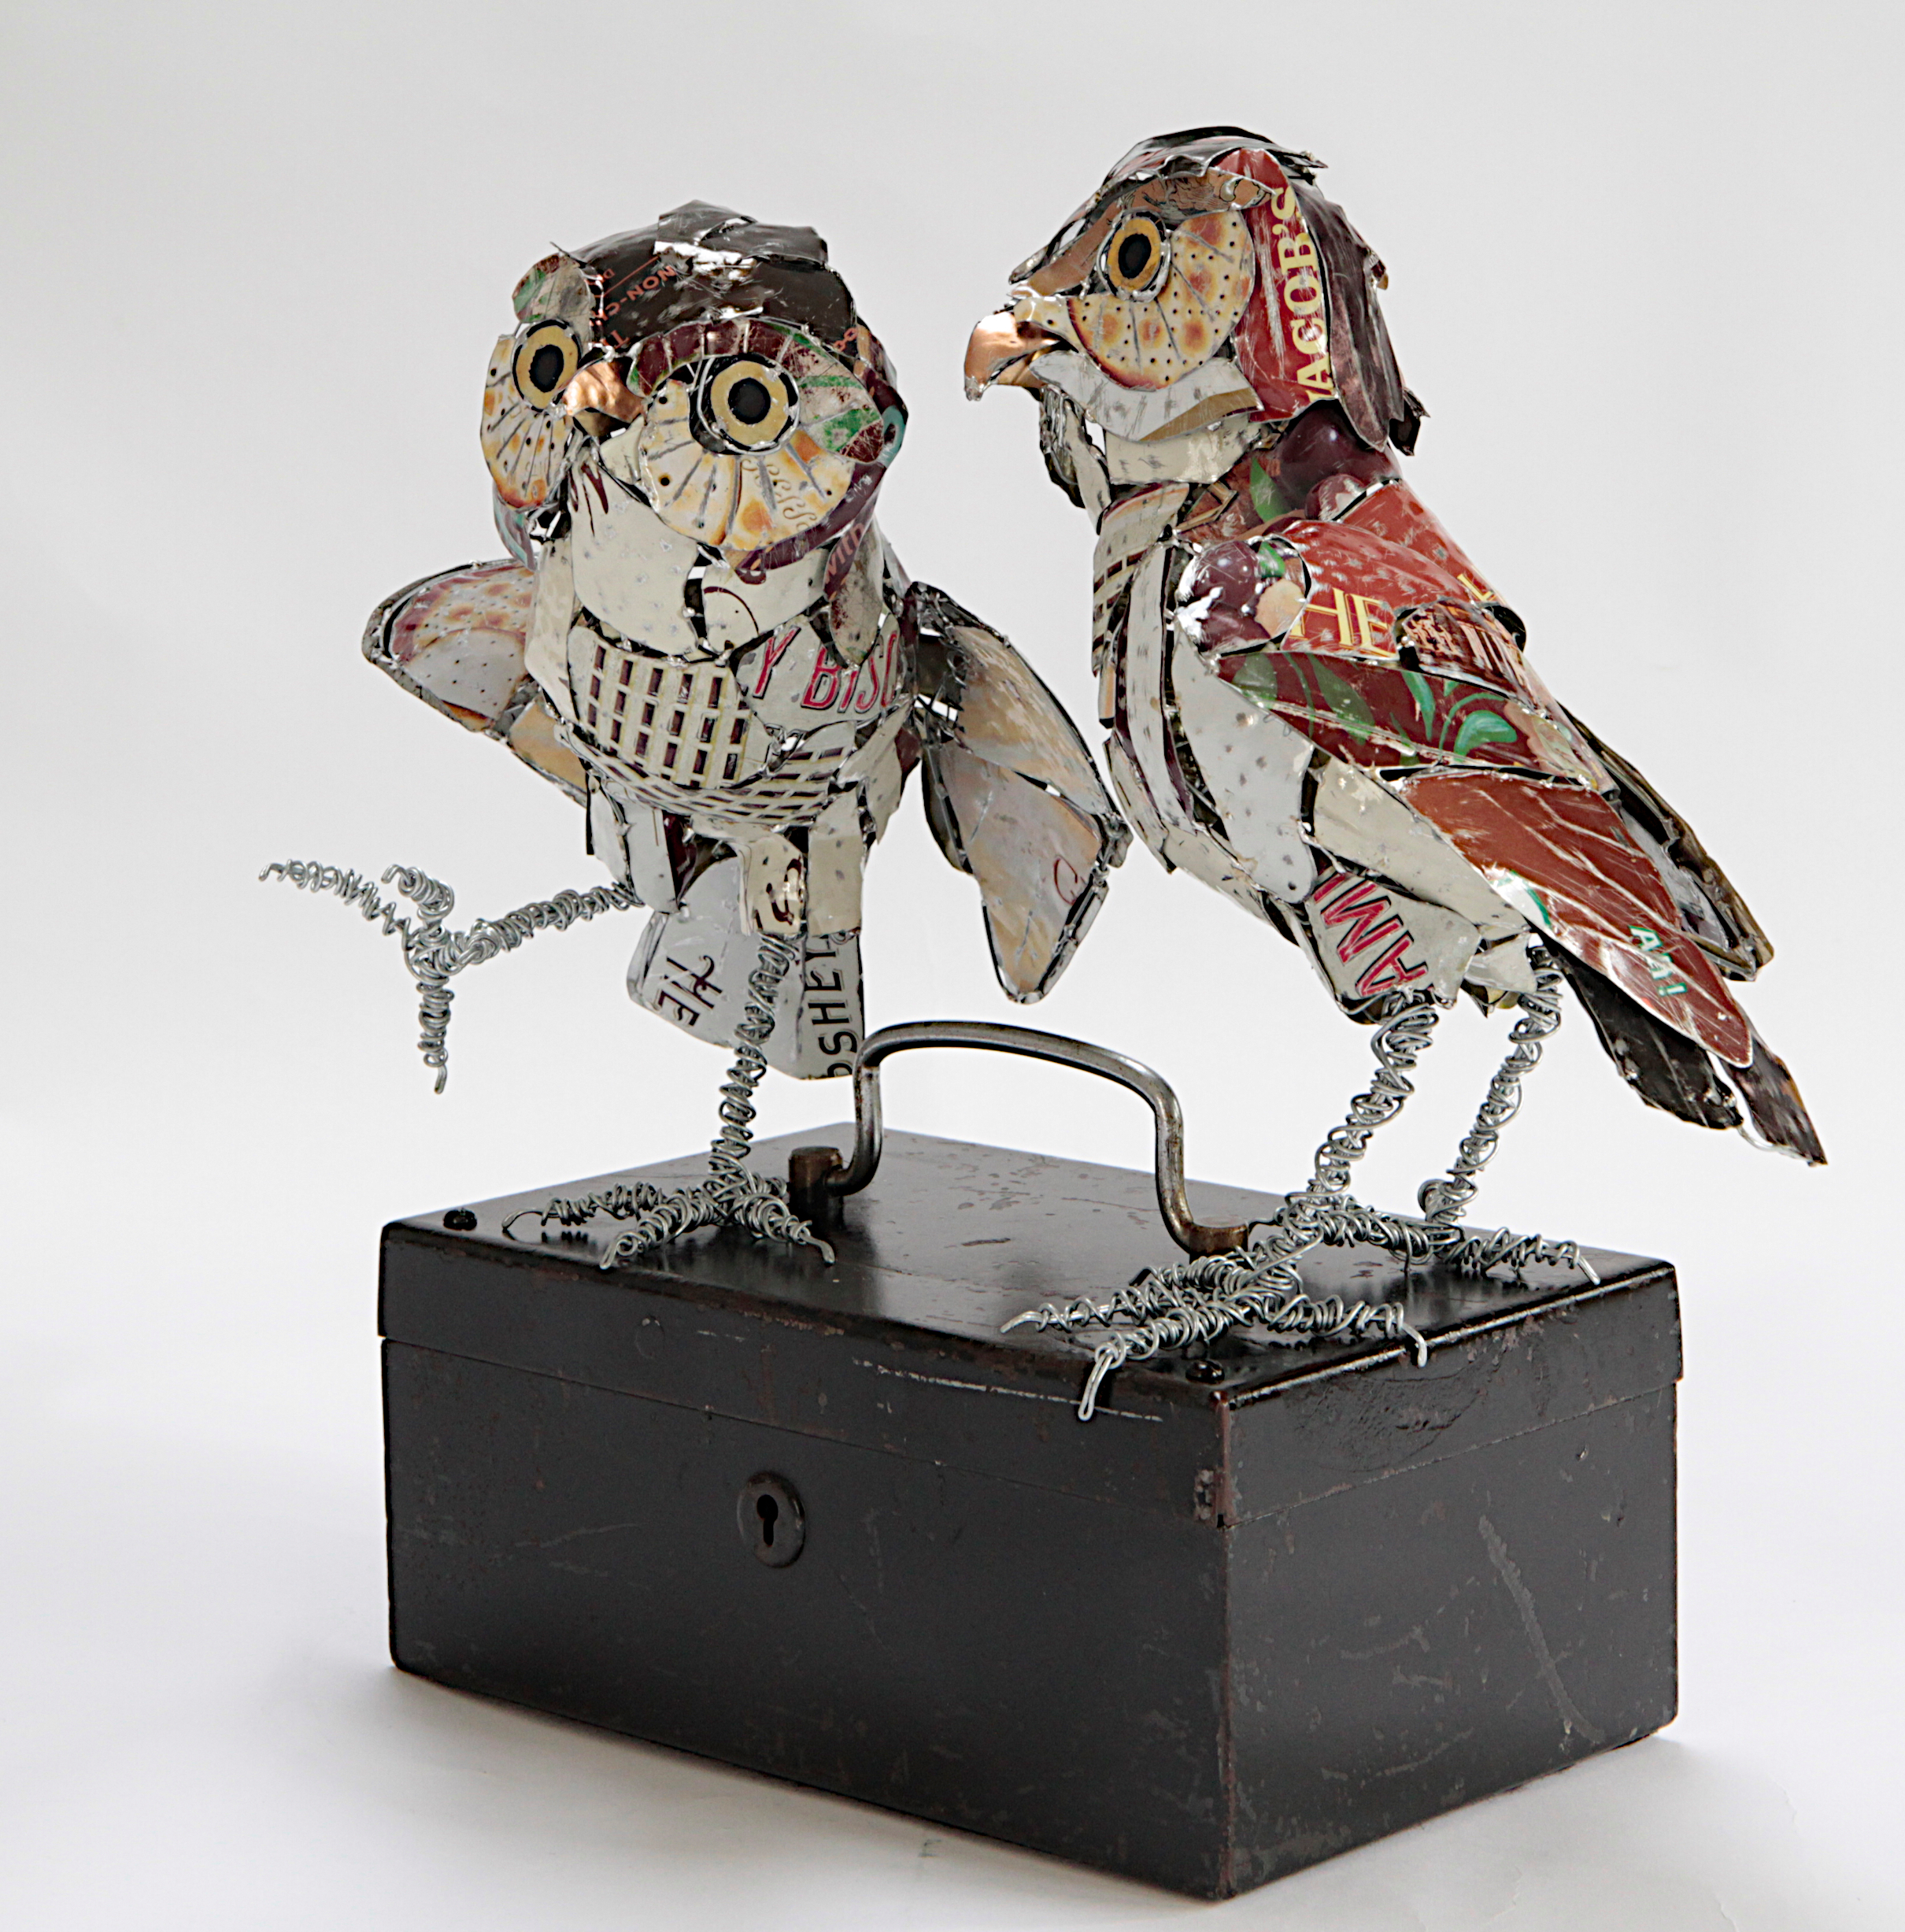 A Parliament of Owls      made from wire, tin and an old cash box, they give sage advice